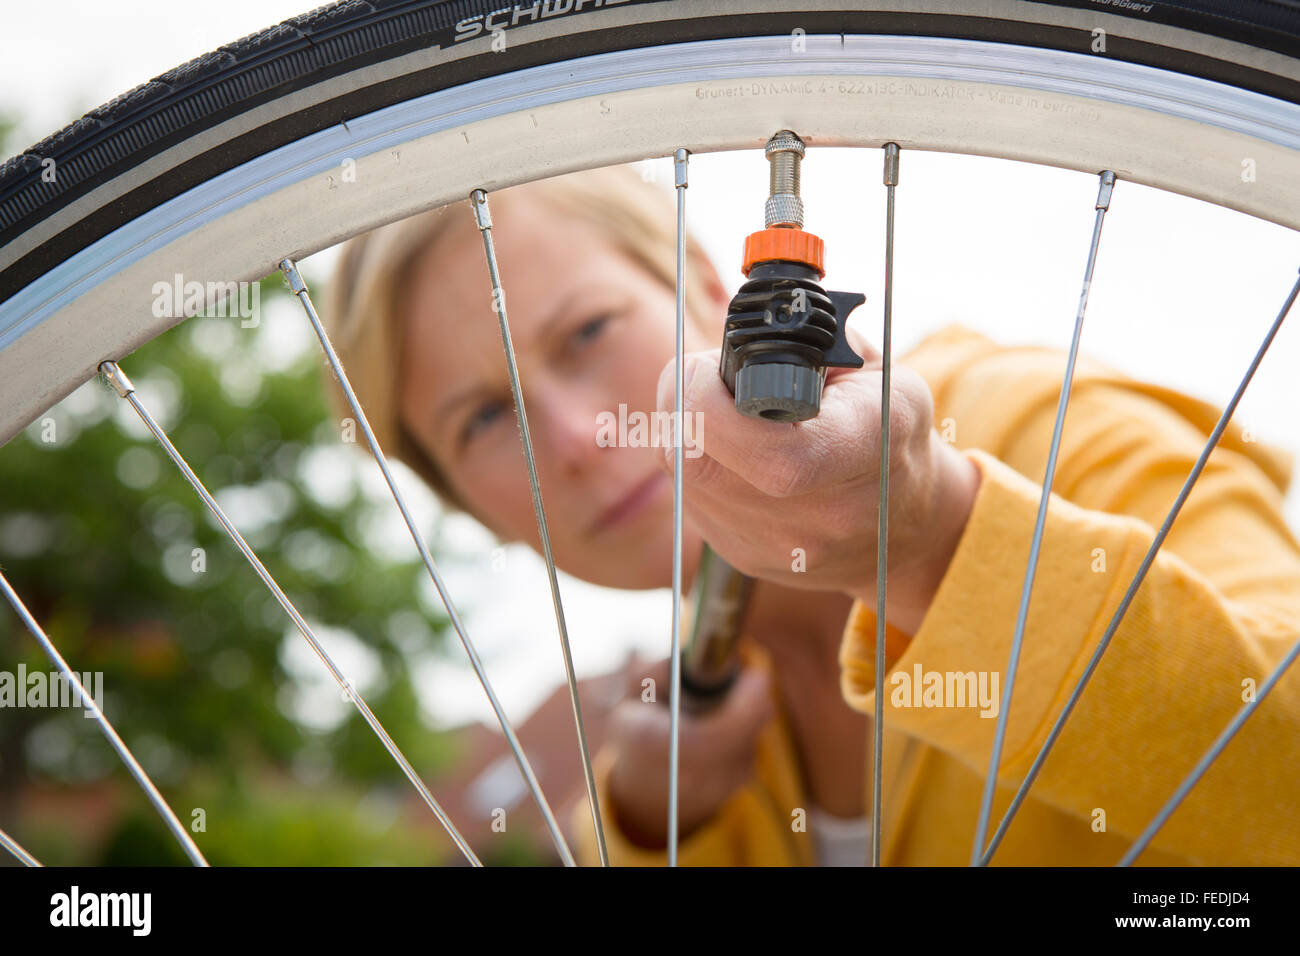 Woman pumps the tires on her bicycle wheel - Stock Image